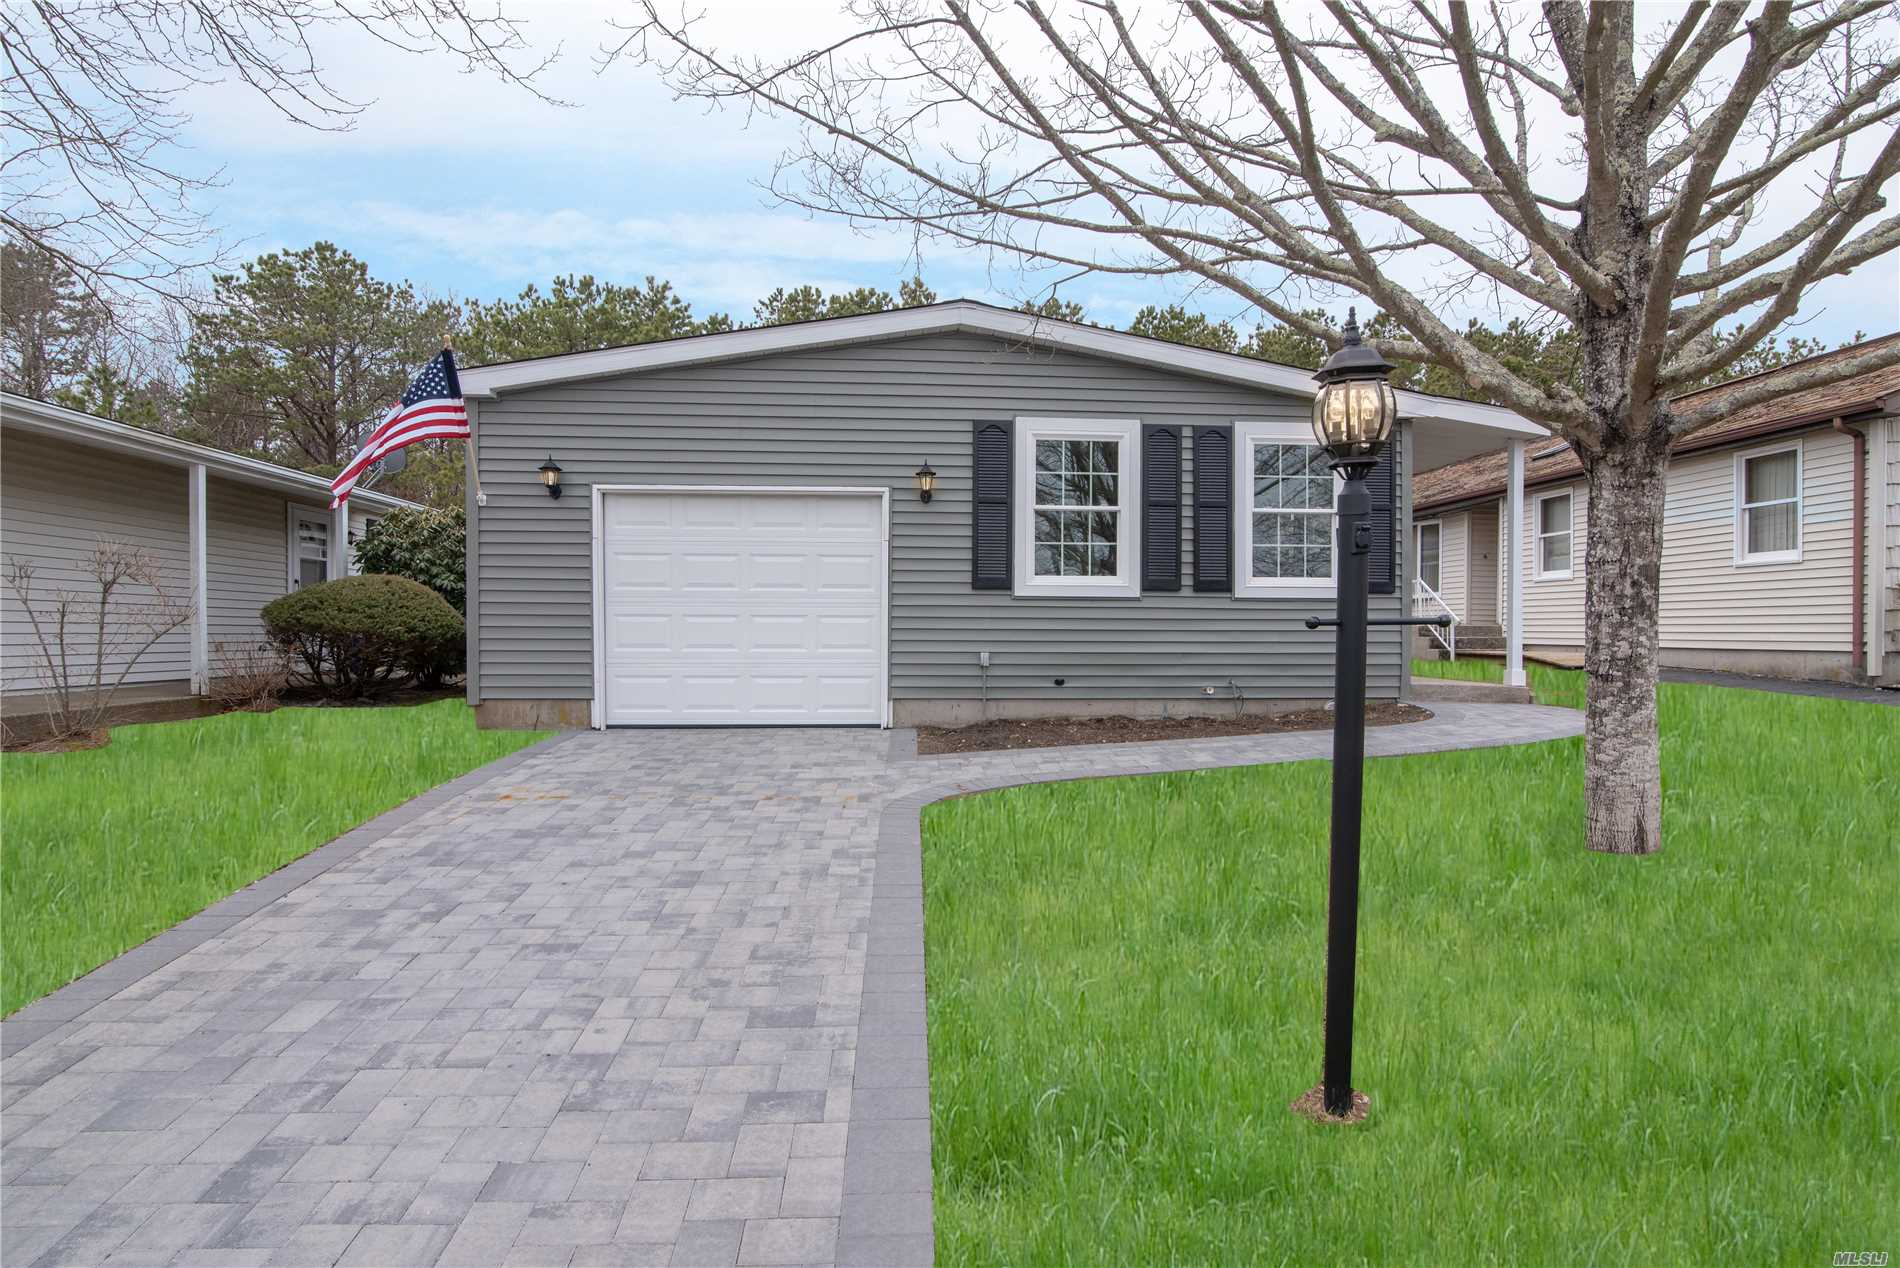 Property for sale at 67 W Village Cir, Manorville,  New York 11949